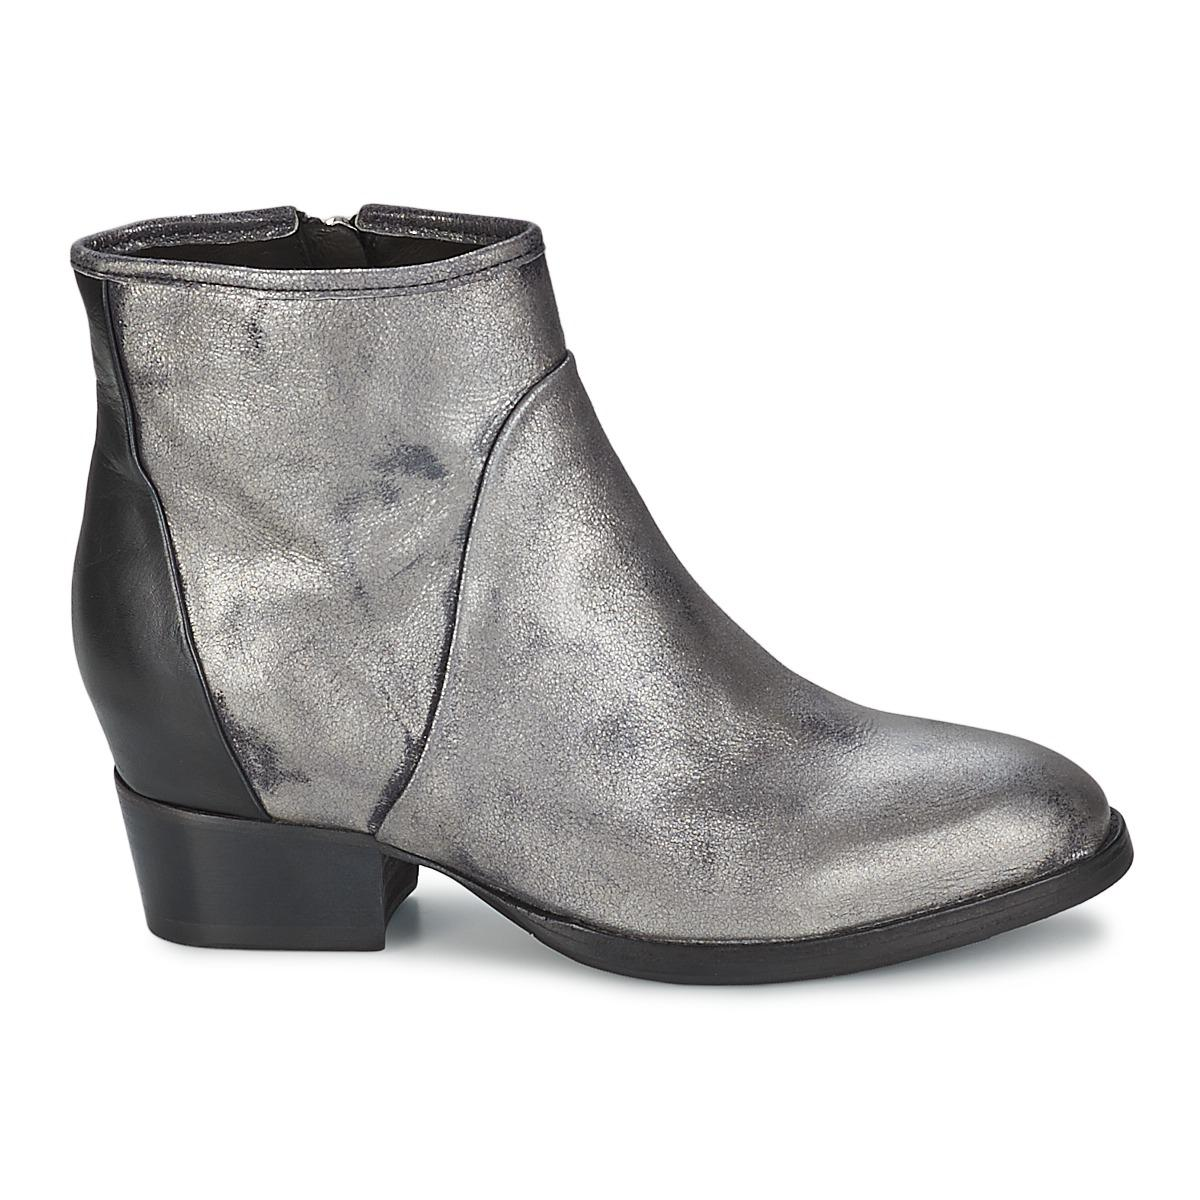 In Metallic Metal Dave Martins Boots Lyst Catarina Ankle Low aZPwp